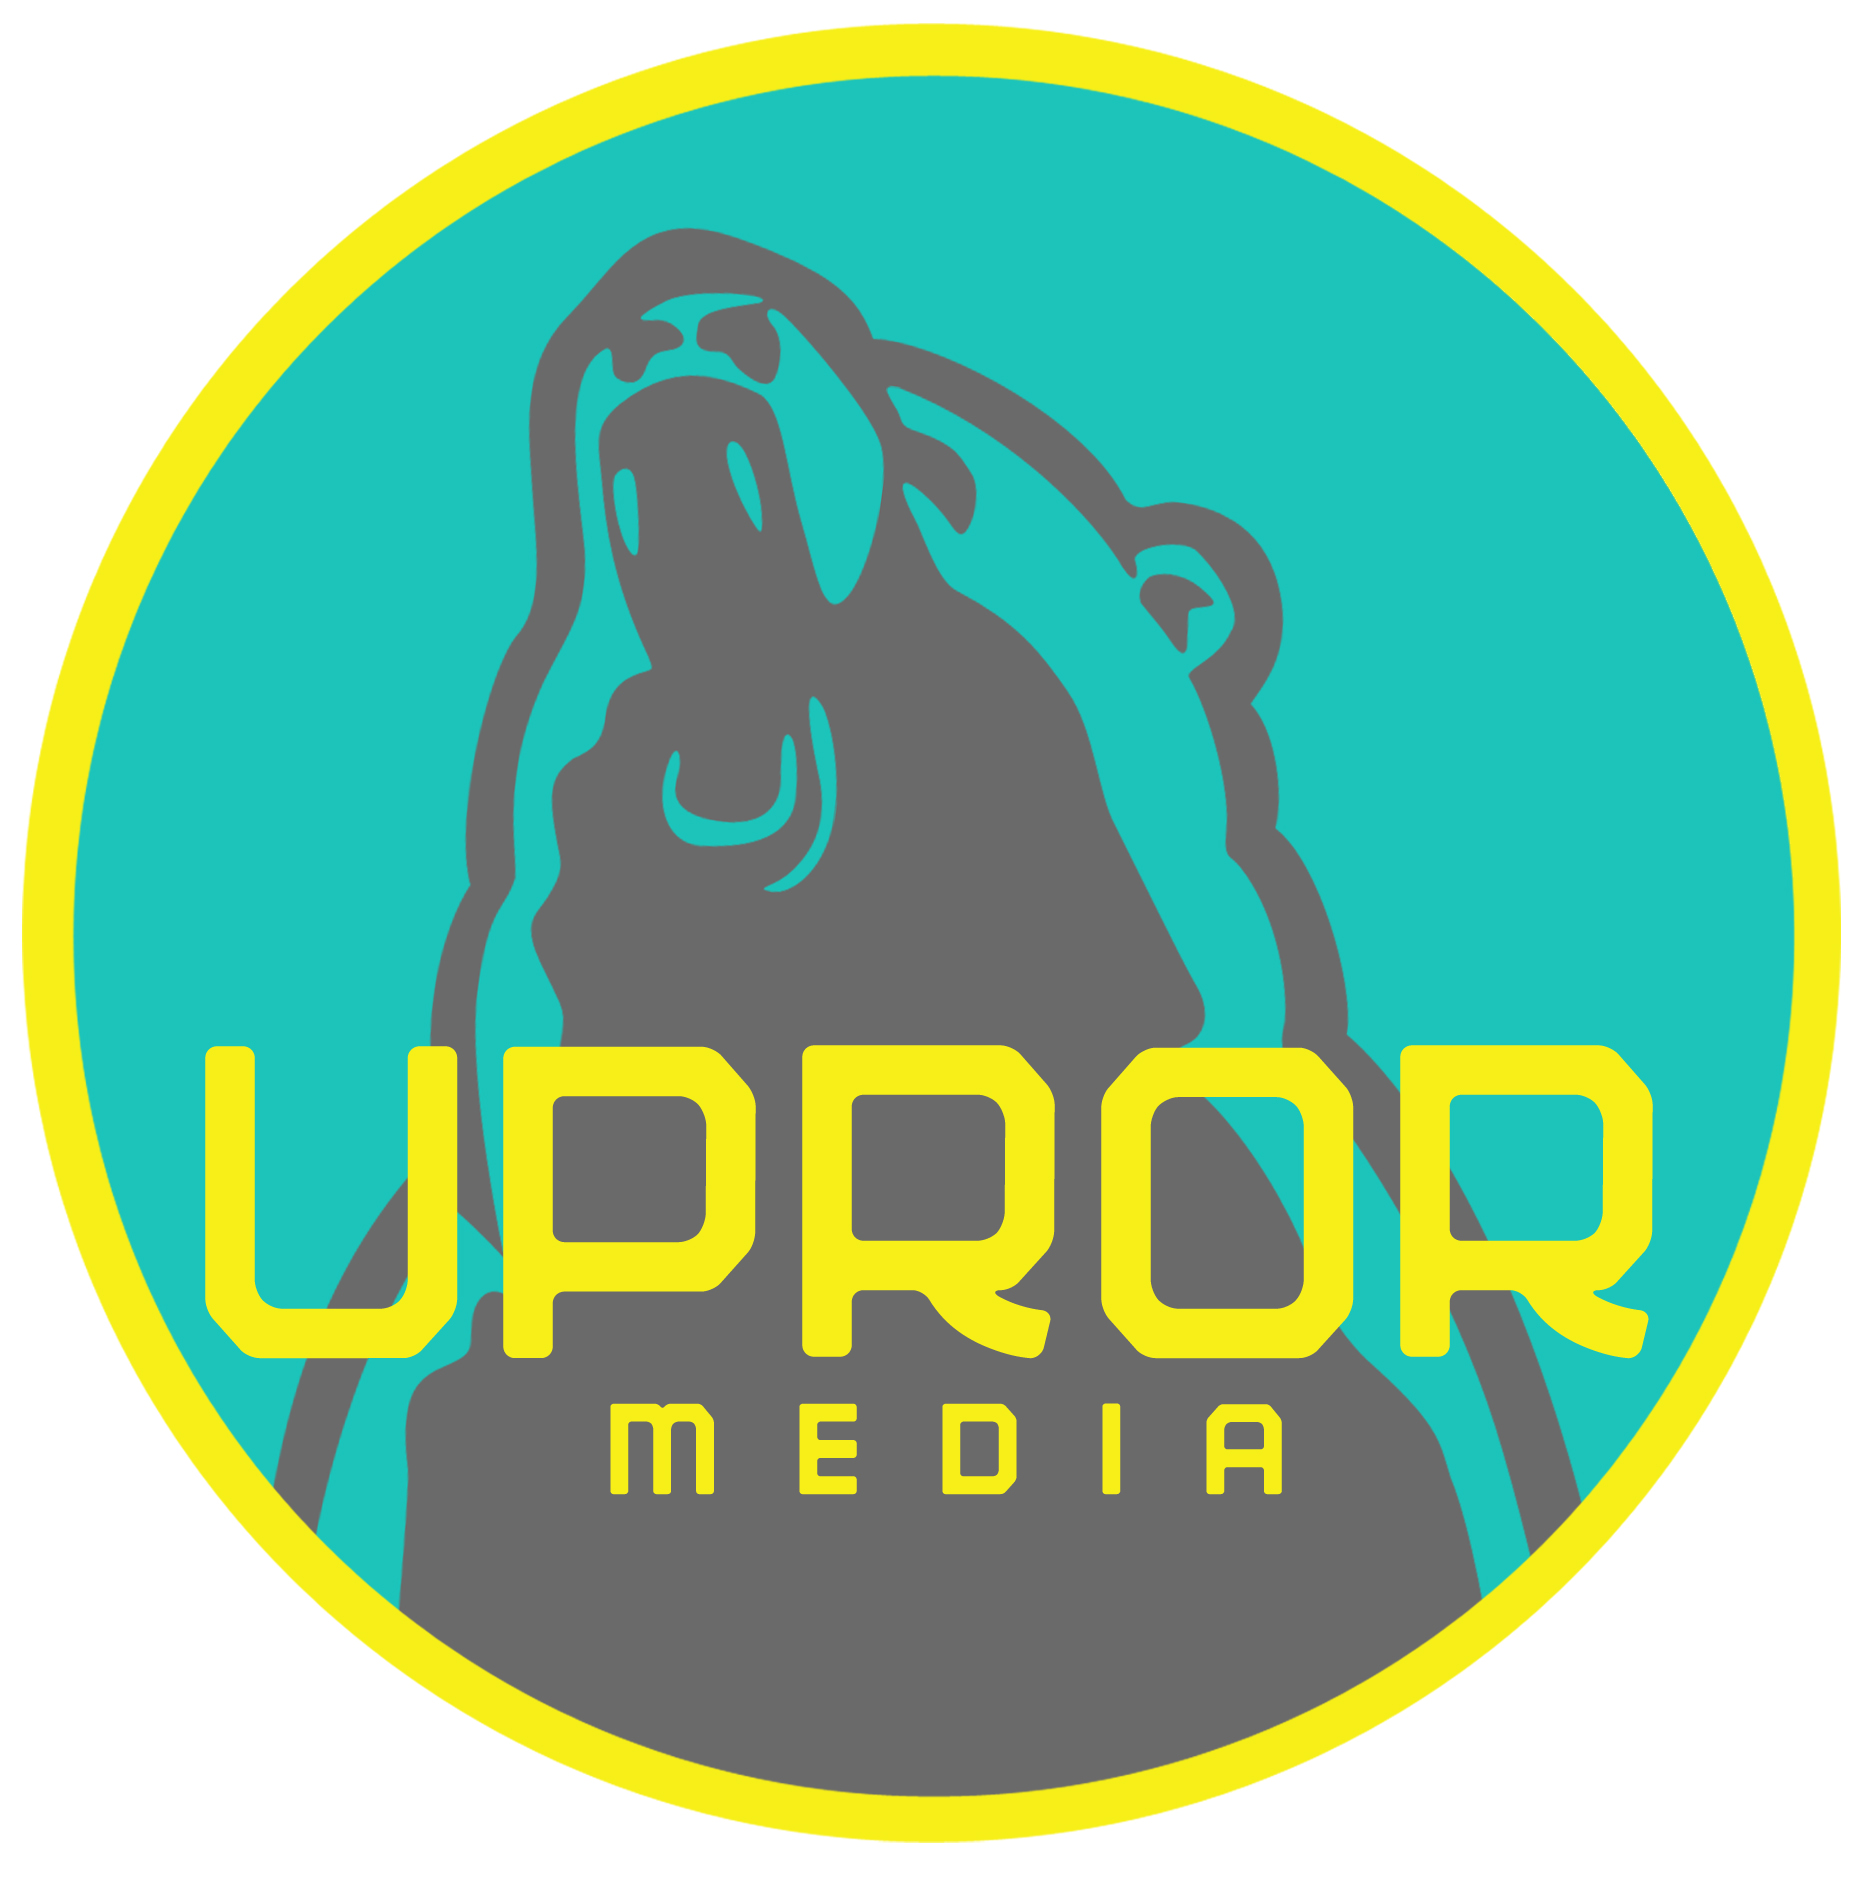 Upror_Logo_v4_02_badge.jpg